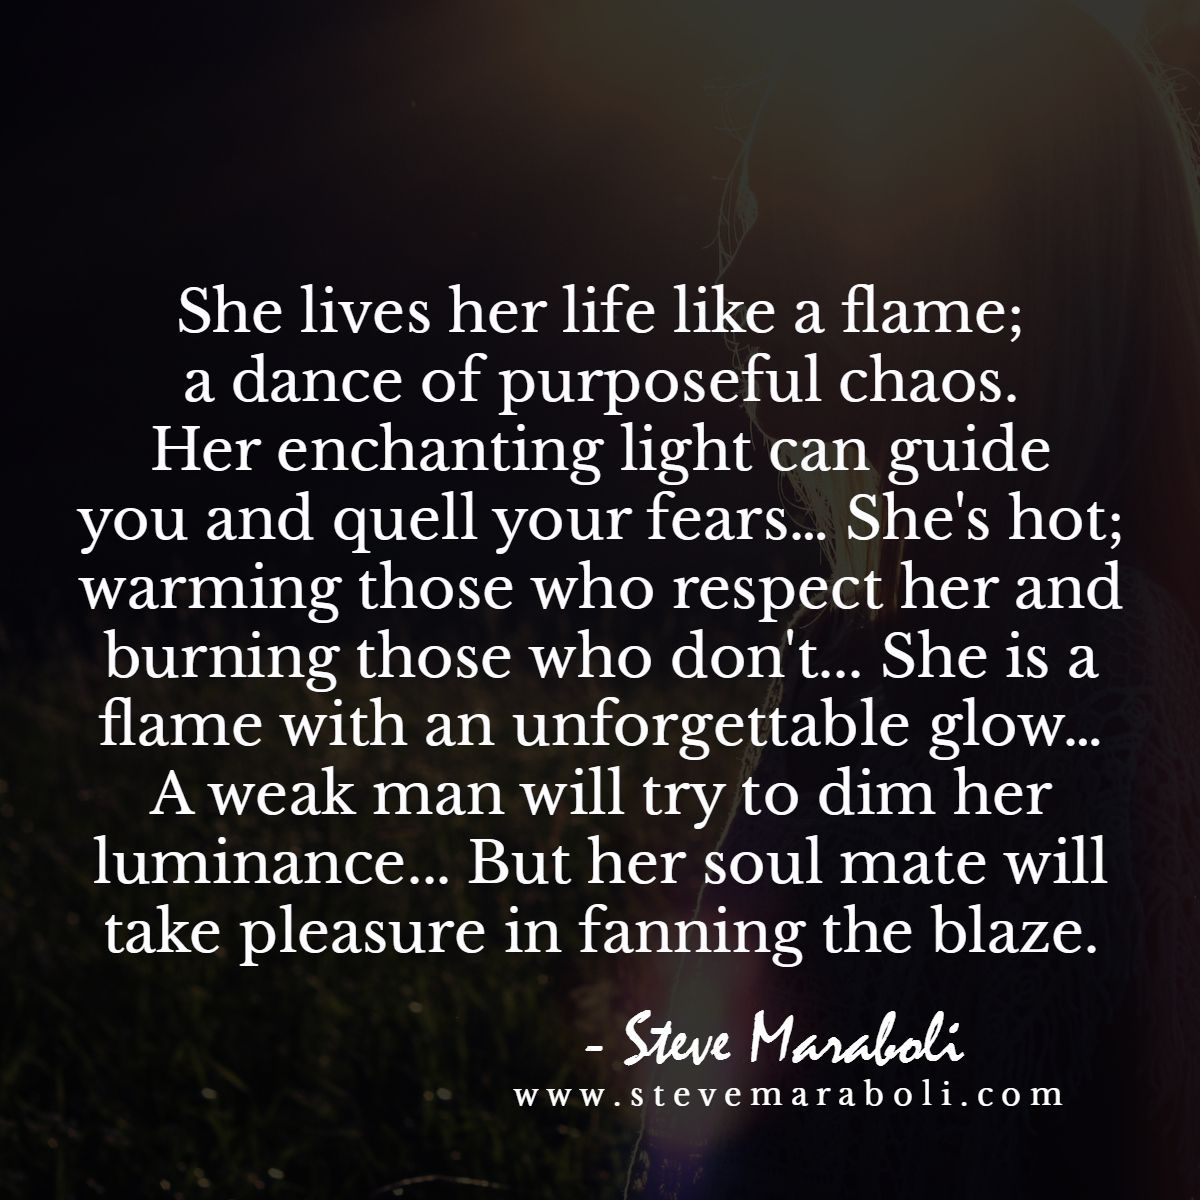 Quotes For Relationships Love And Relationship Quotes  Steve Maraboli  Love